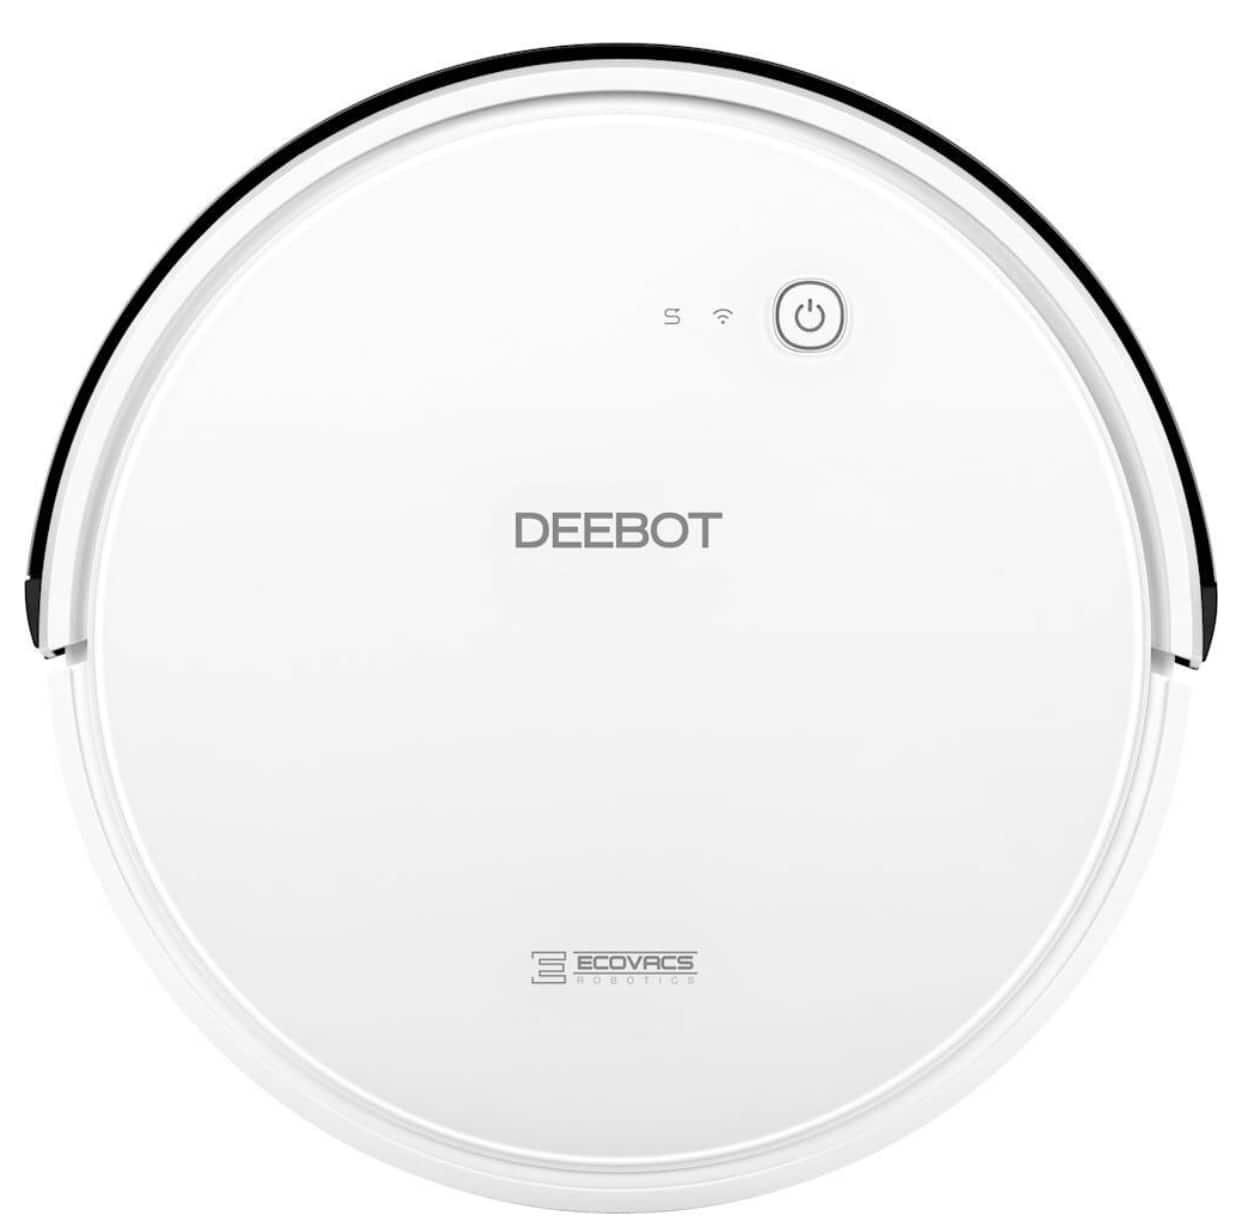 ECOVACS Robotics - DEEBOT 600 App-Controlled Self-Charging Robot Vacuum - White $229.99 @ Best Buy